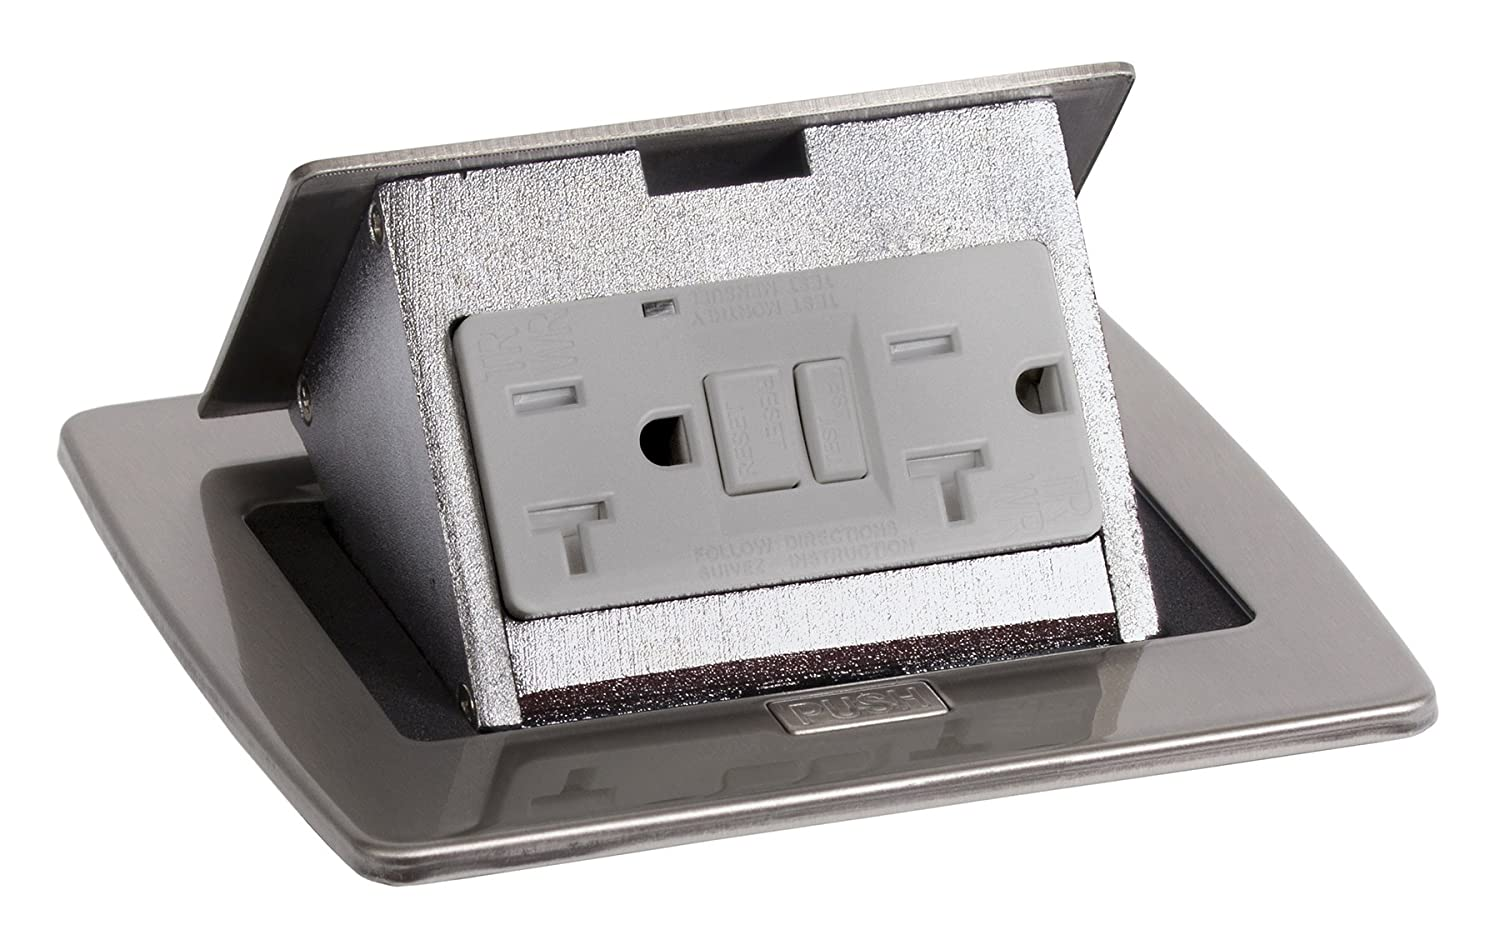 Lew Electric Pufp Ct Ss Countertop Box Pop Up W 20a Gfi Receptacle Wiring Kitchen Counter Outlets Stainless Steel